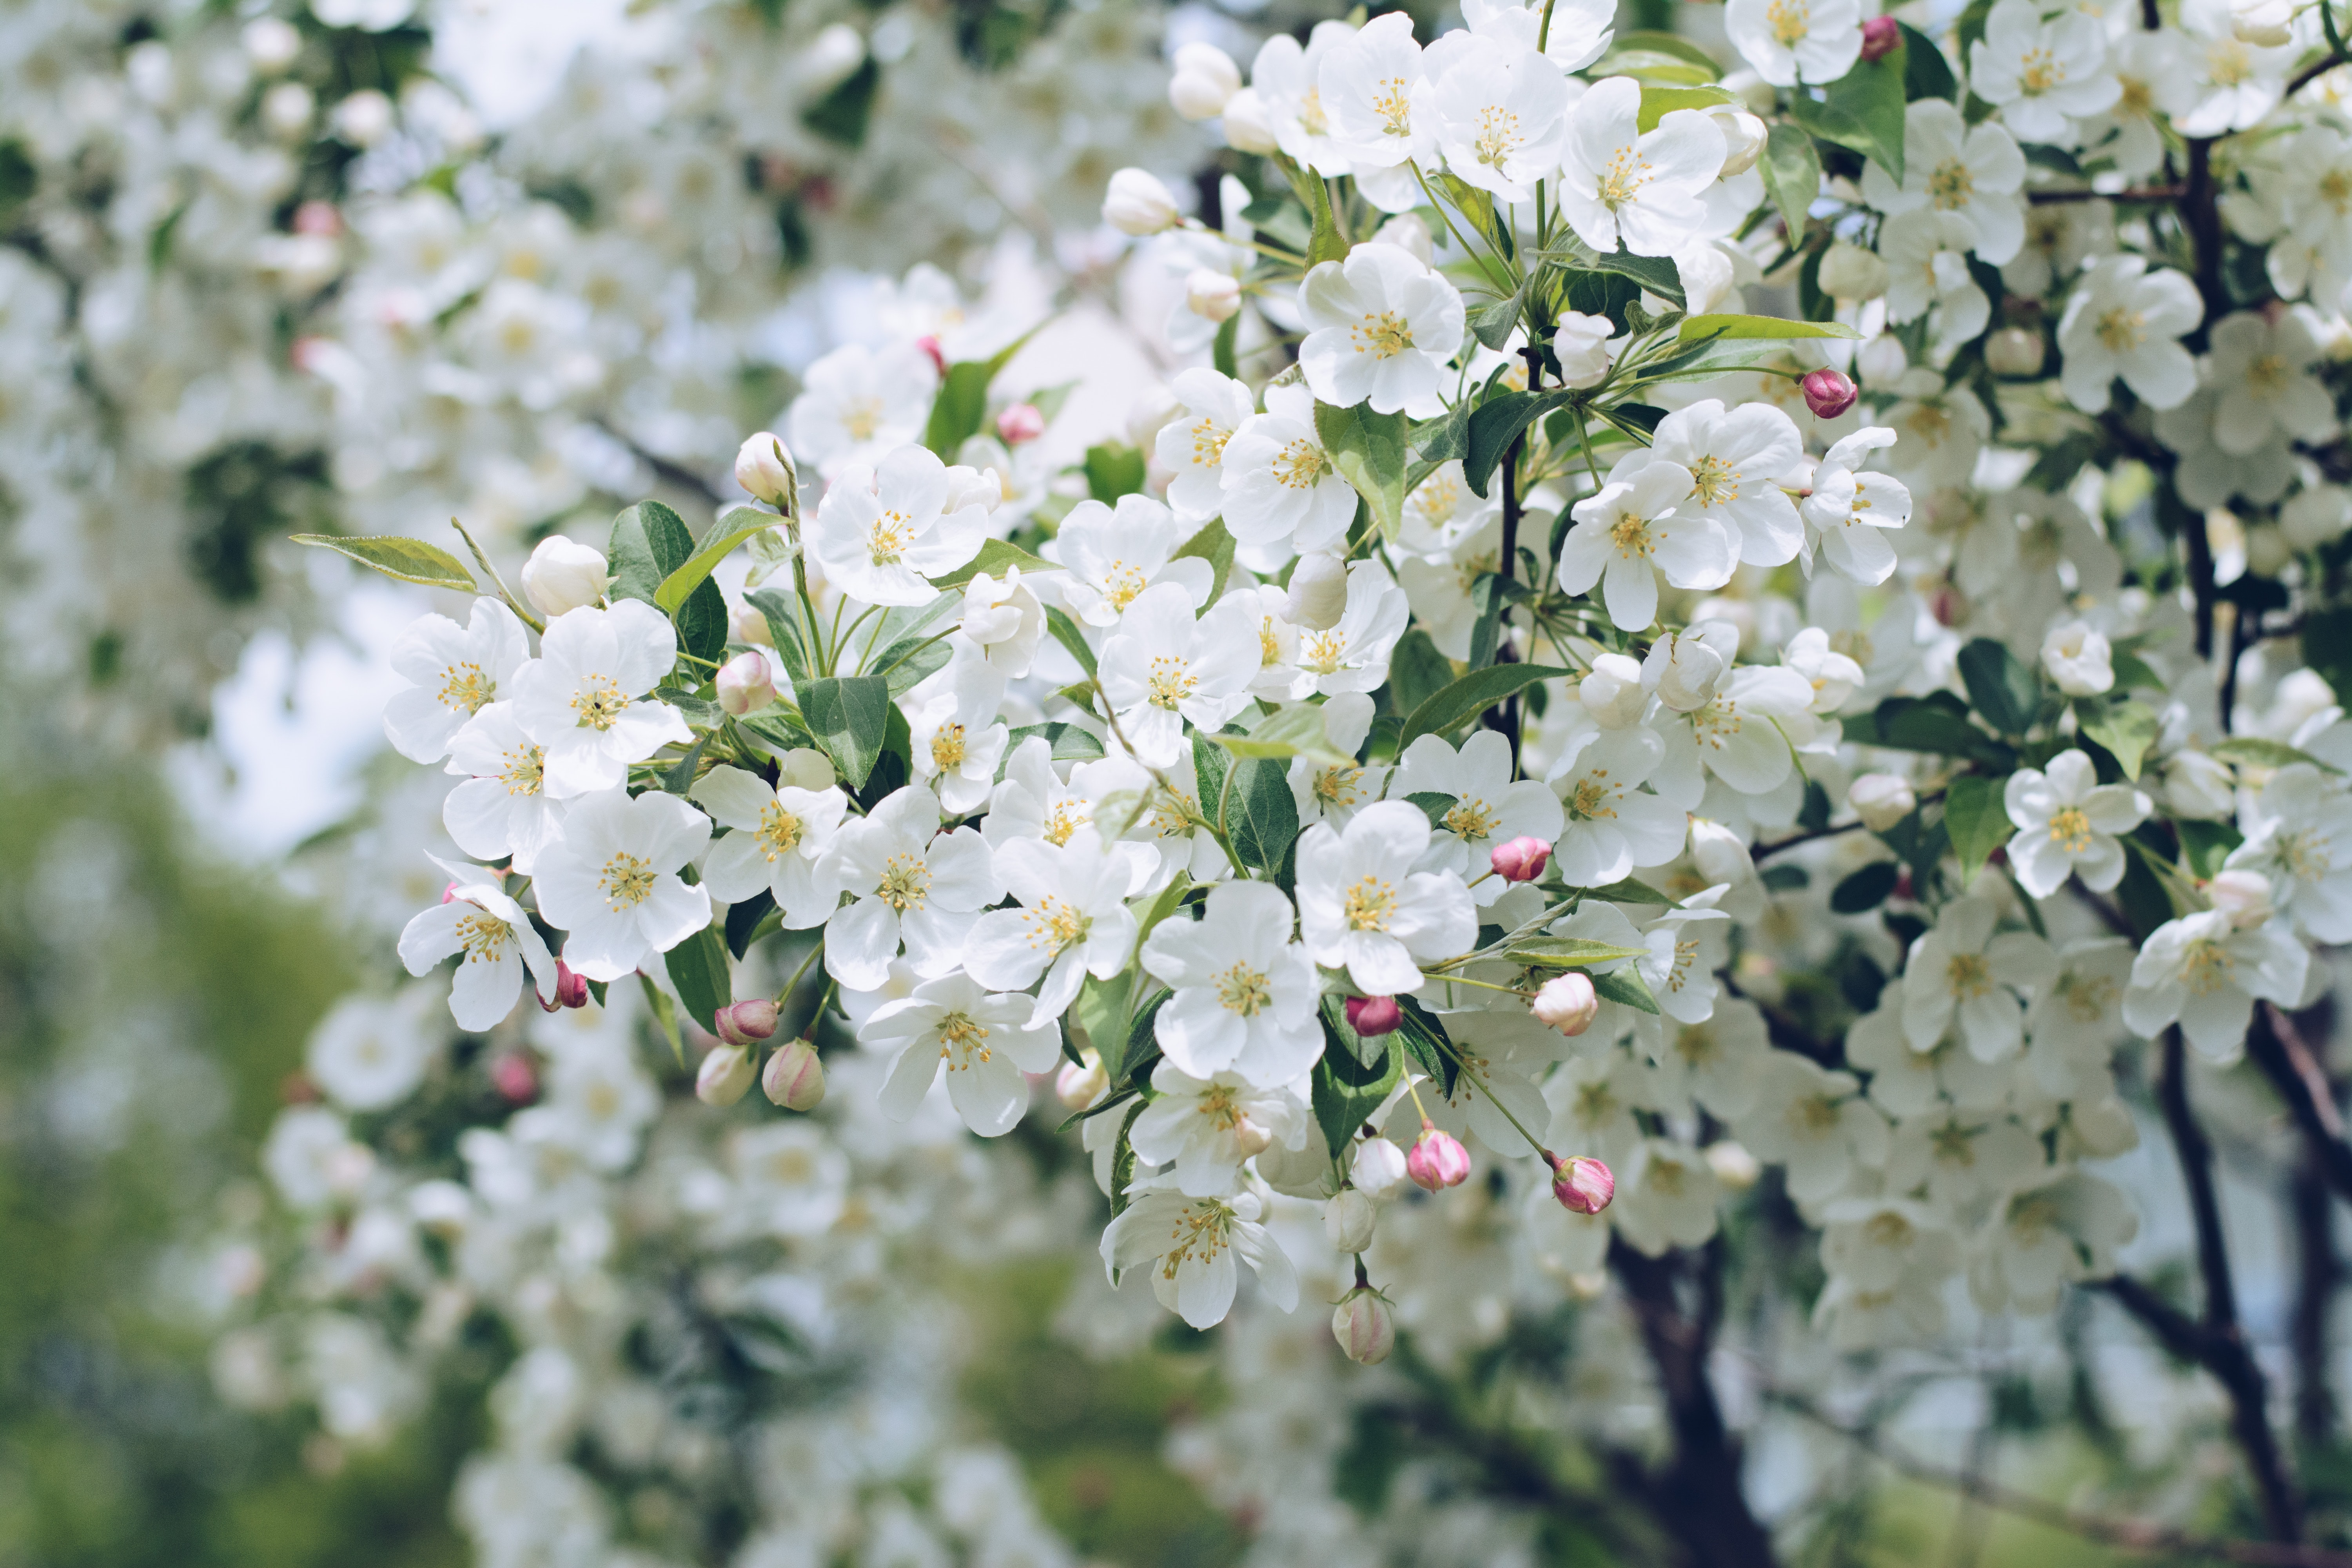 White flowers and pink buds on tree branches